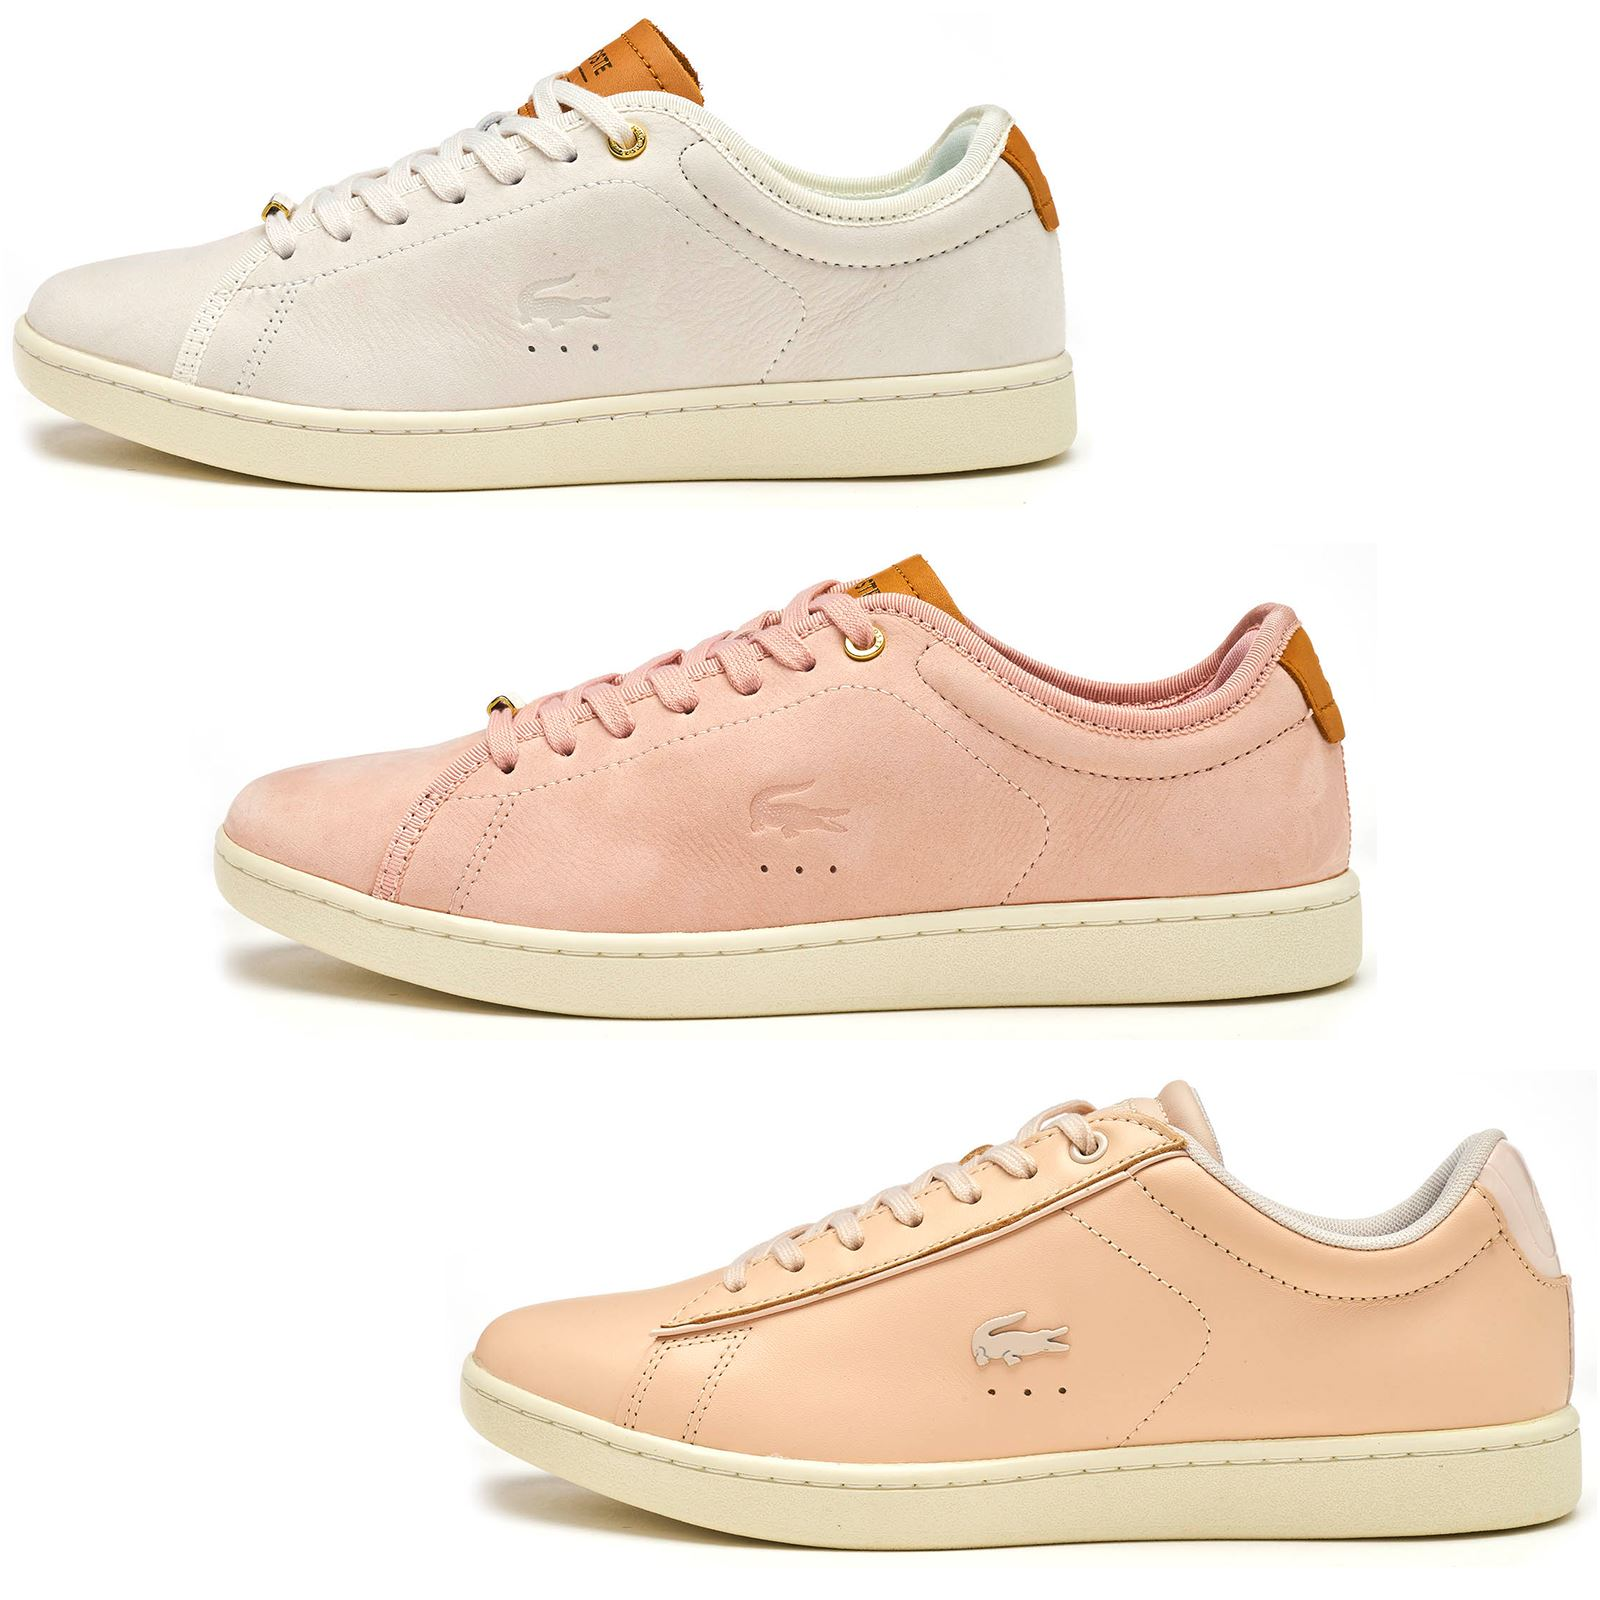 6ba519a09a2 Lacoste Carnaby EVO 317   417 SPW femmes cuir   Suede Trainers in Pink    blanc